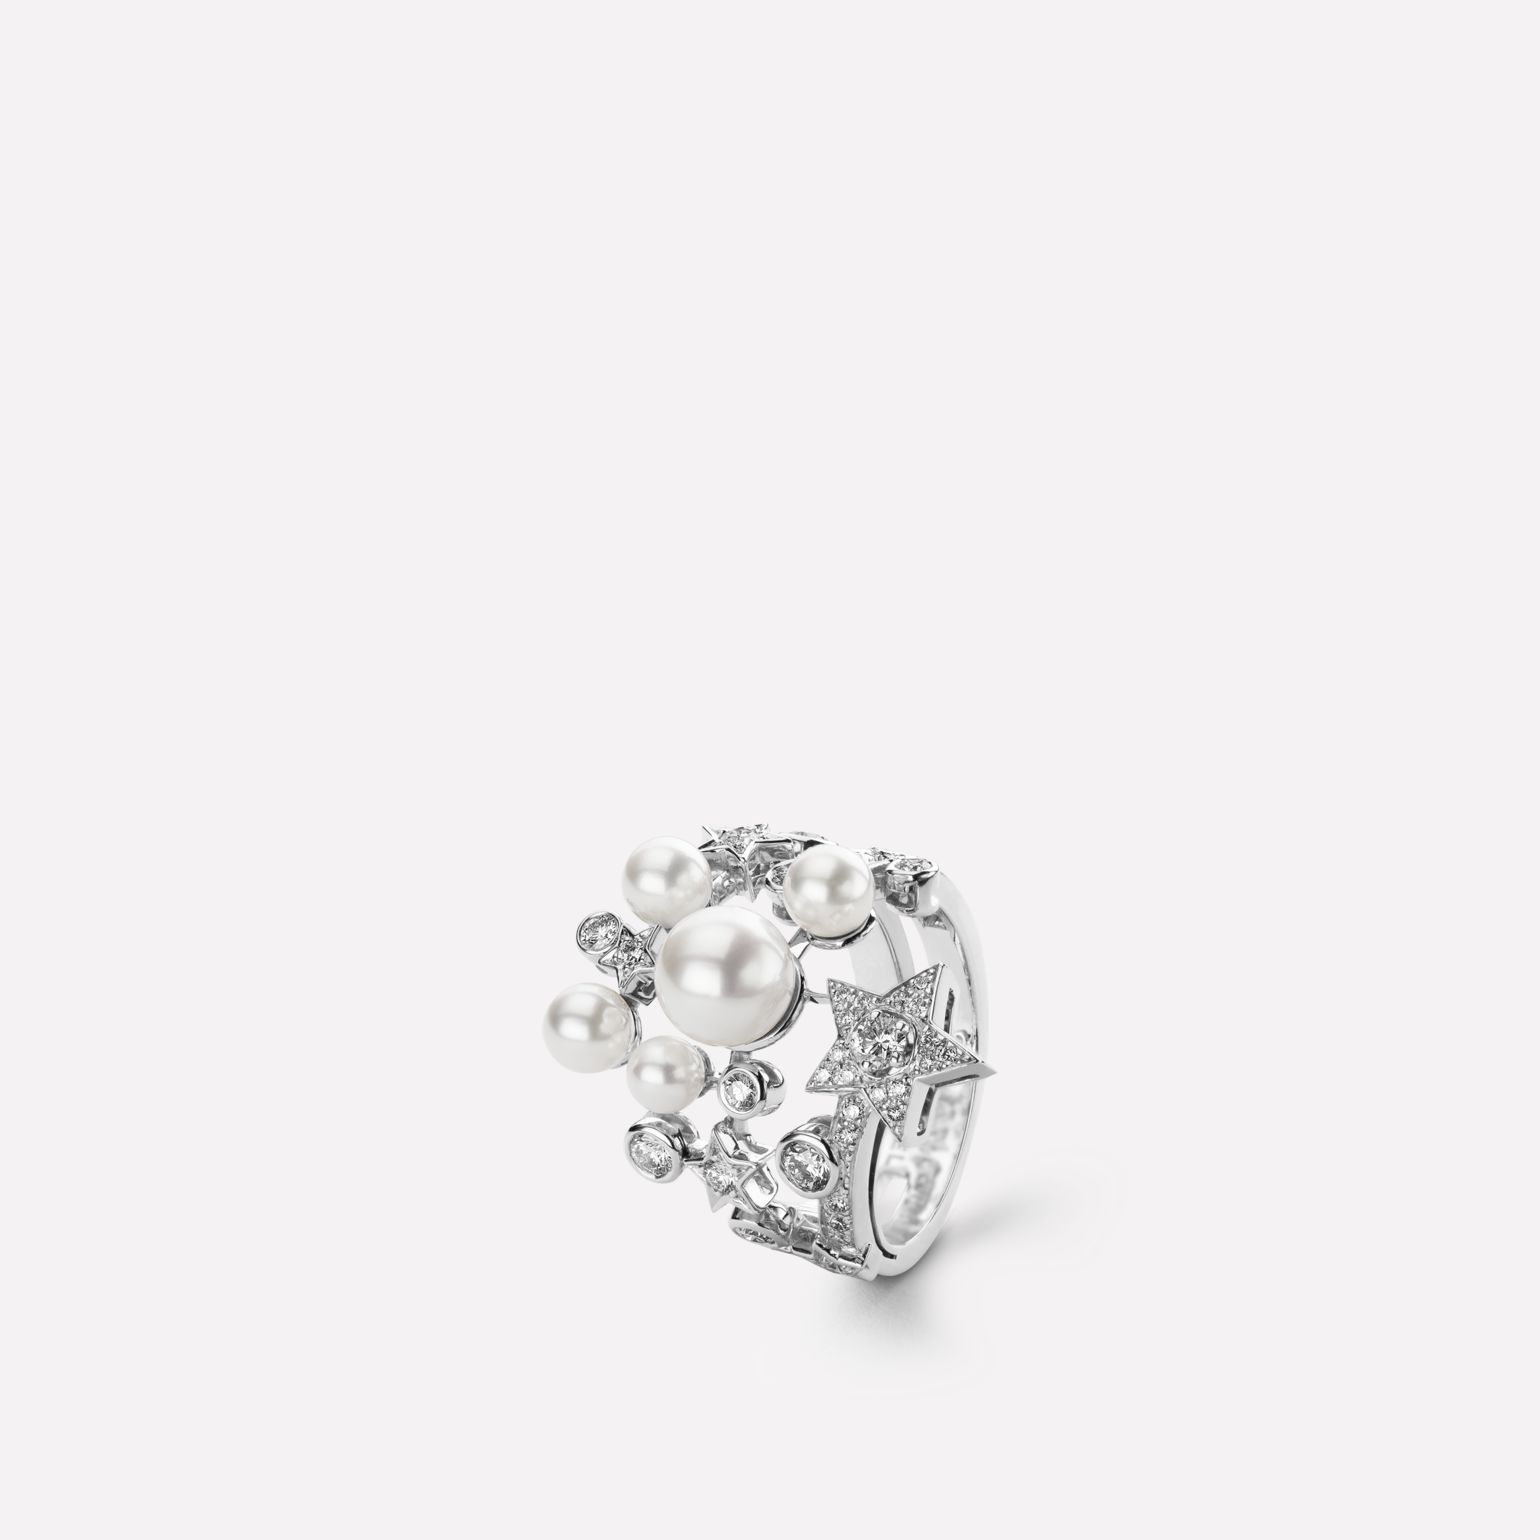 Comète Ring Star ring in 18K white gold, diamonds and cultured pearls